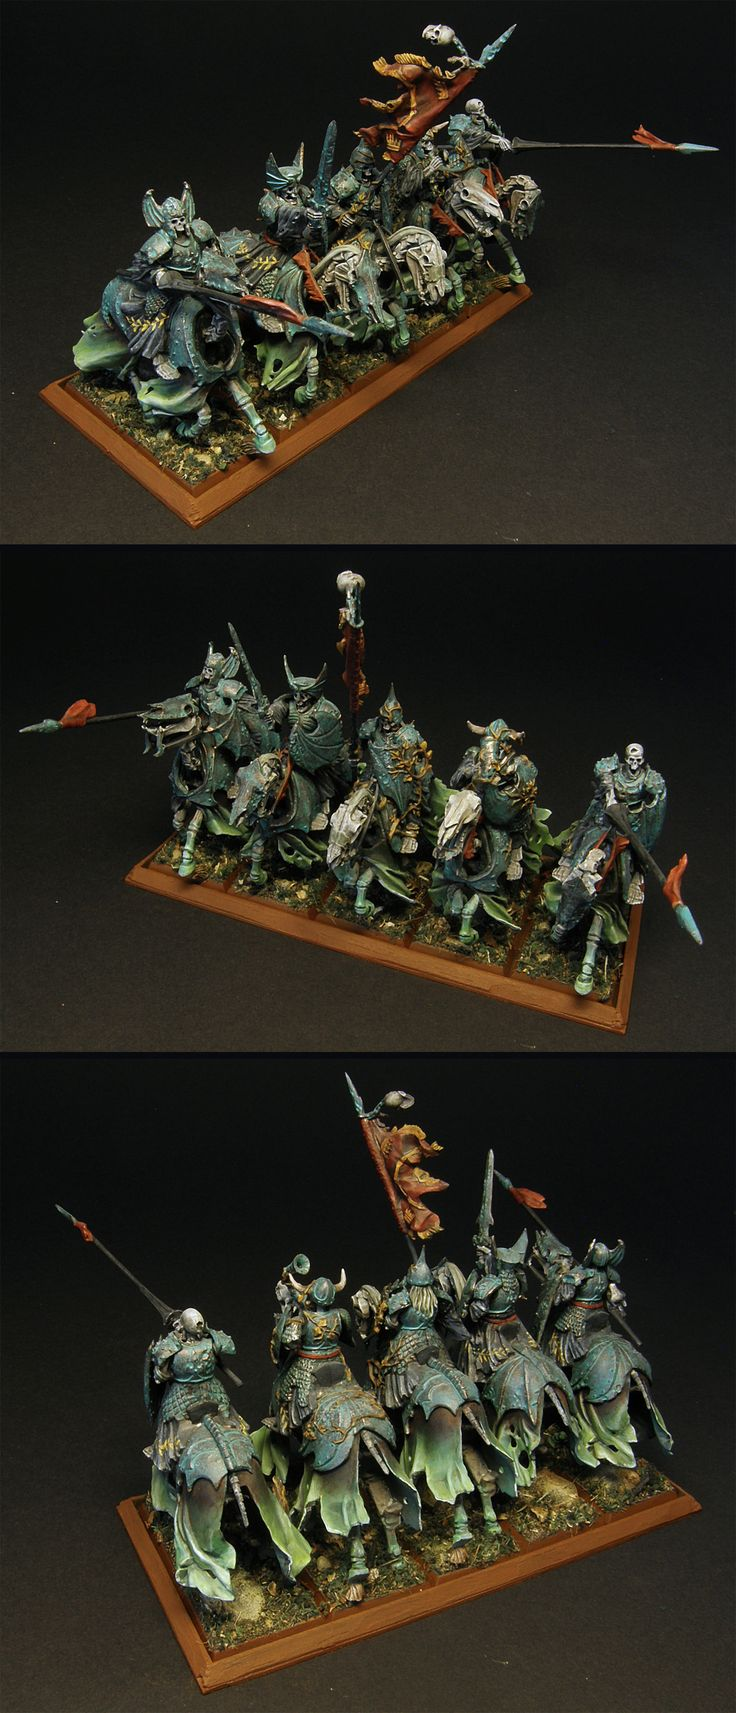 Black Knights unit - painted for Vampire Counts, Warhammer Fantasy Battle - but can work for Age of Sigmar if need be. Right now they belong to the Deathrattle faction in Death Grand Alliance.